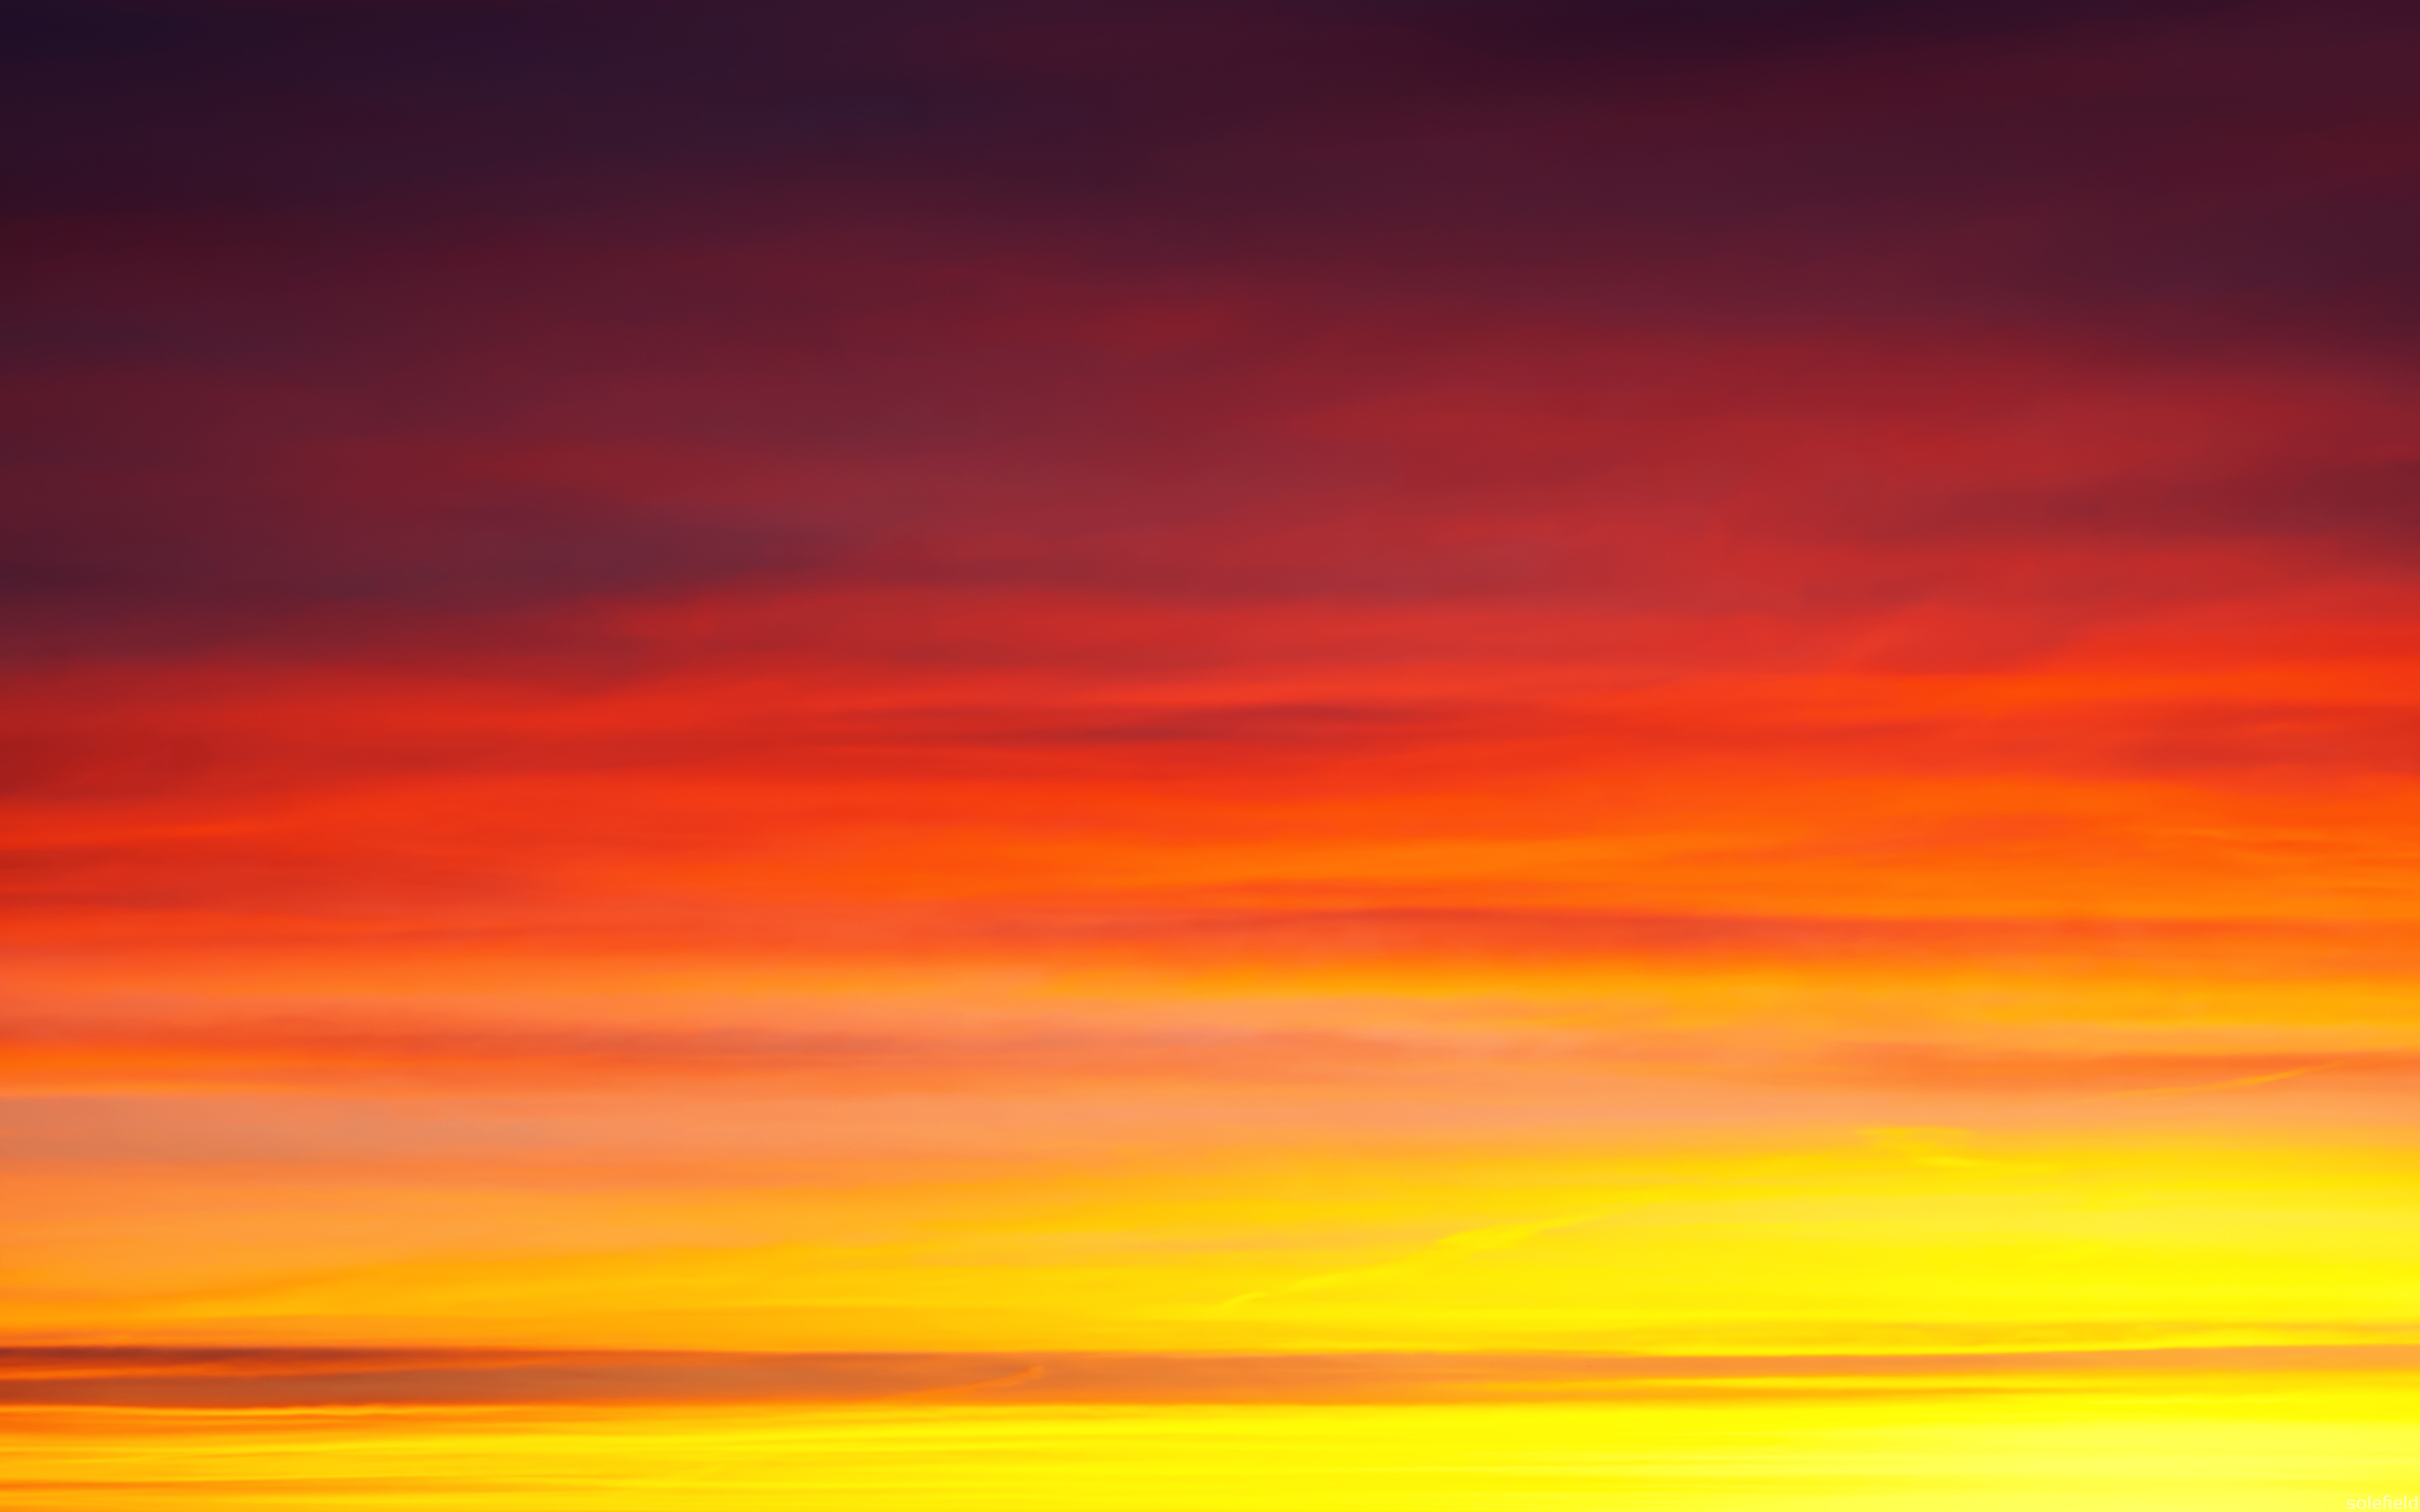 Sunset Sky in Yellow and Red